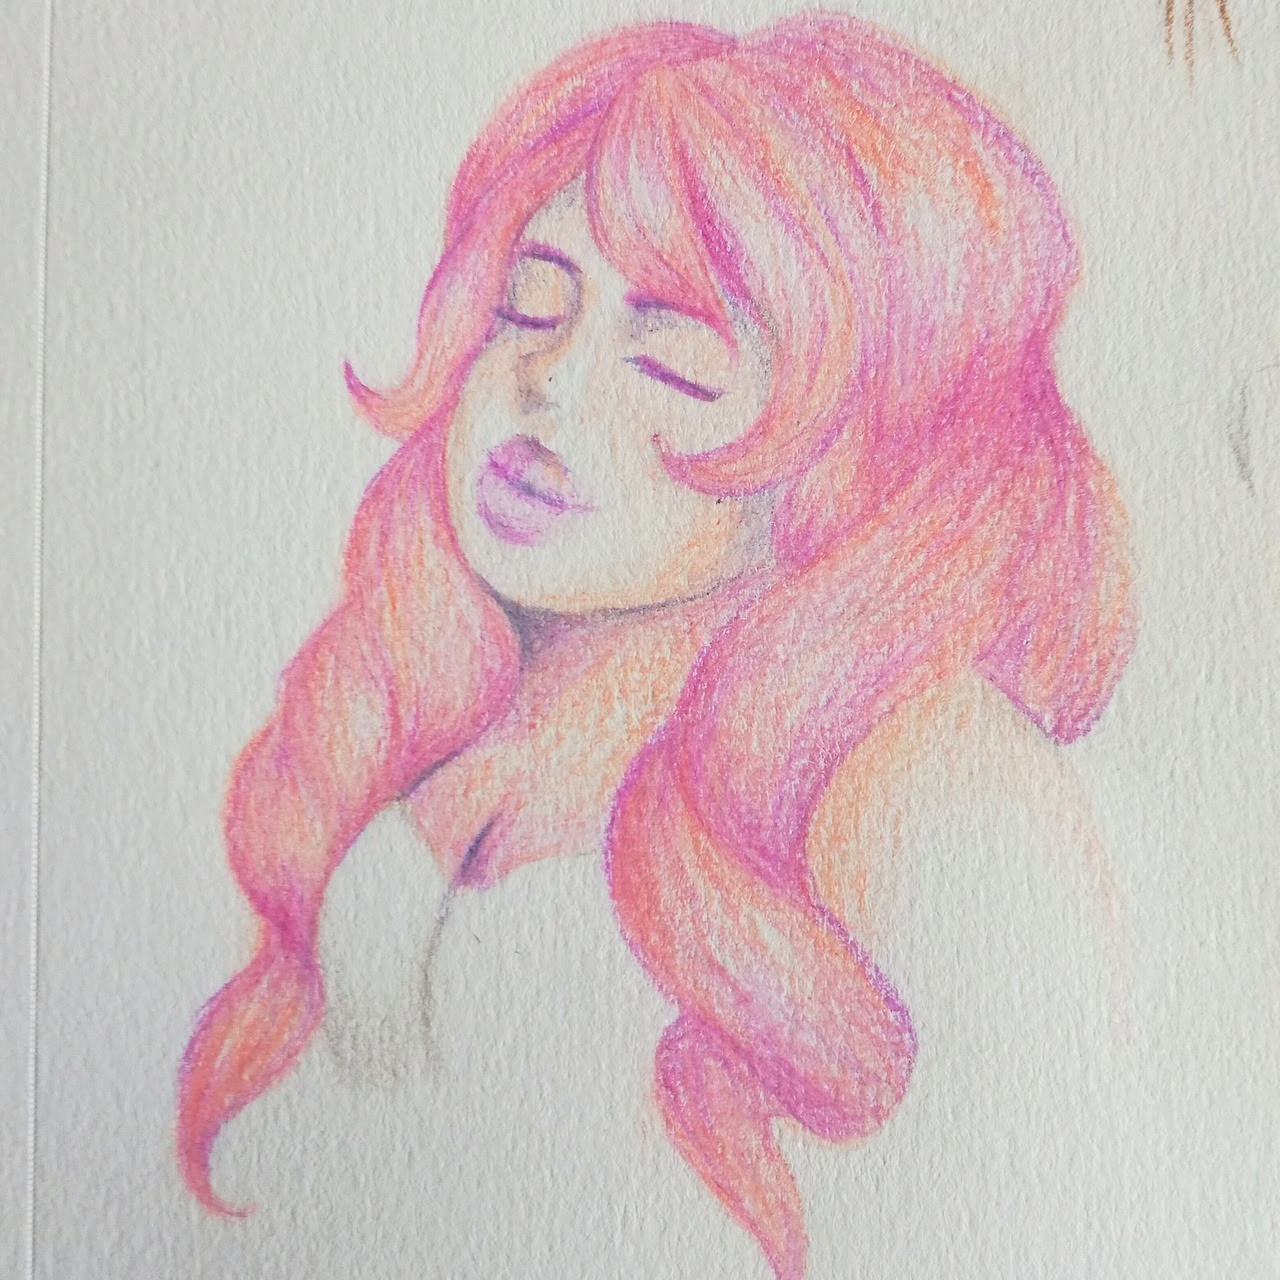 A fast rose quartz fanart I did in one hour :)